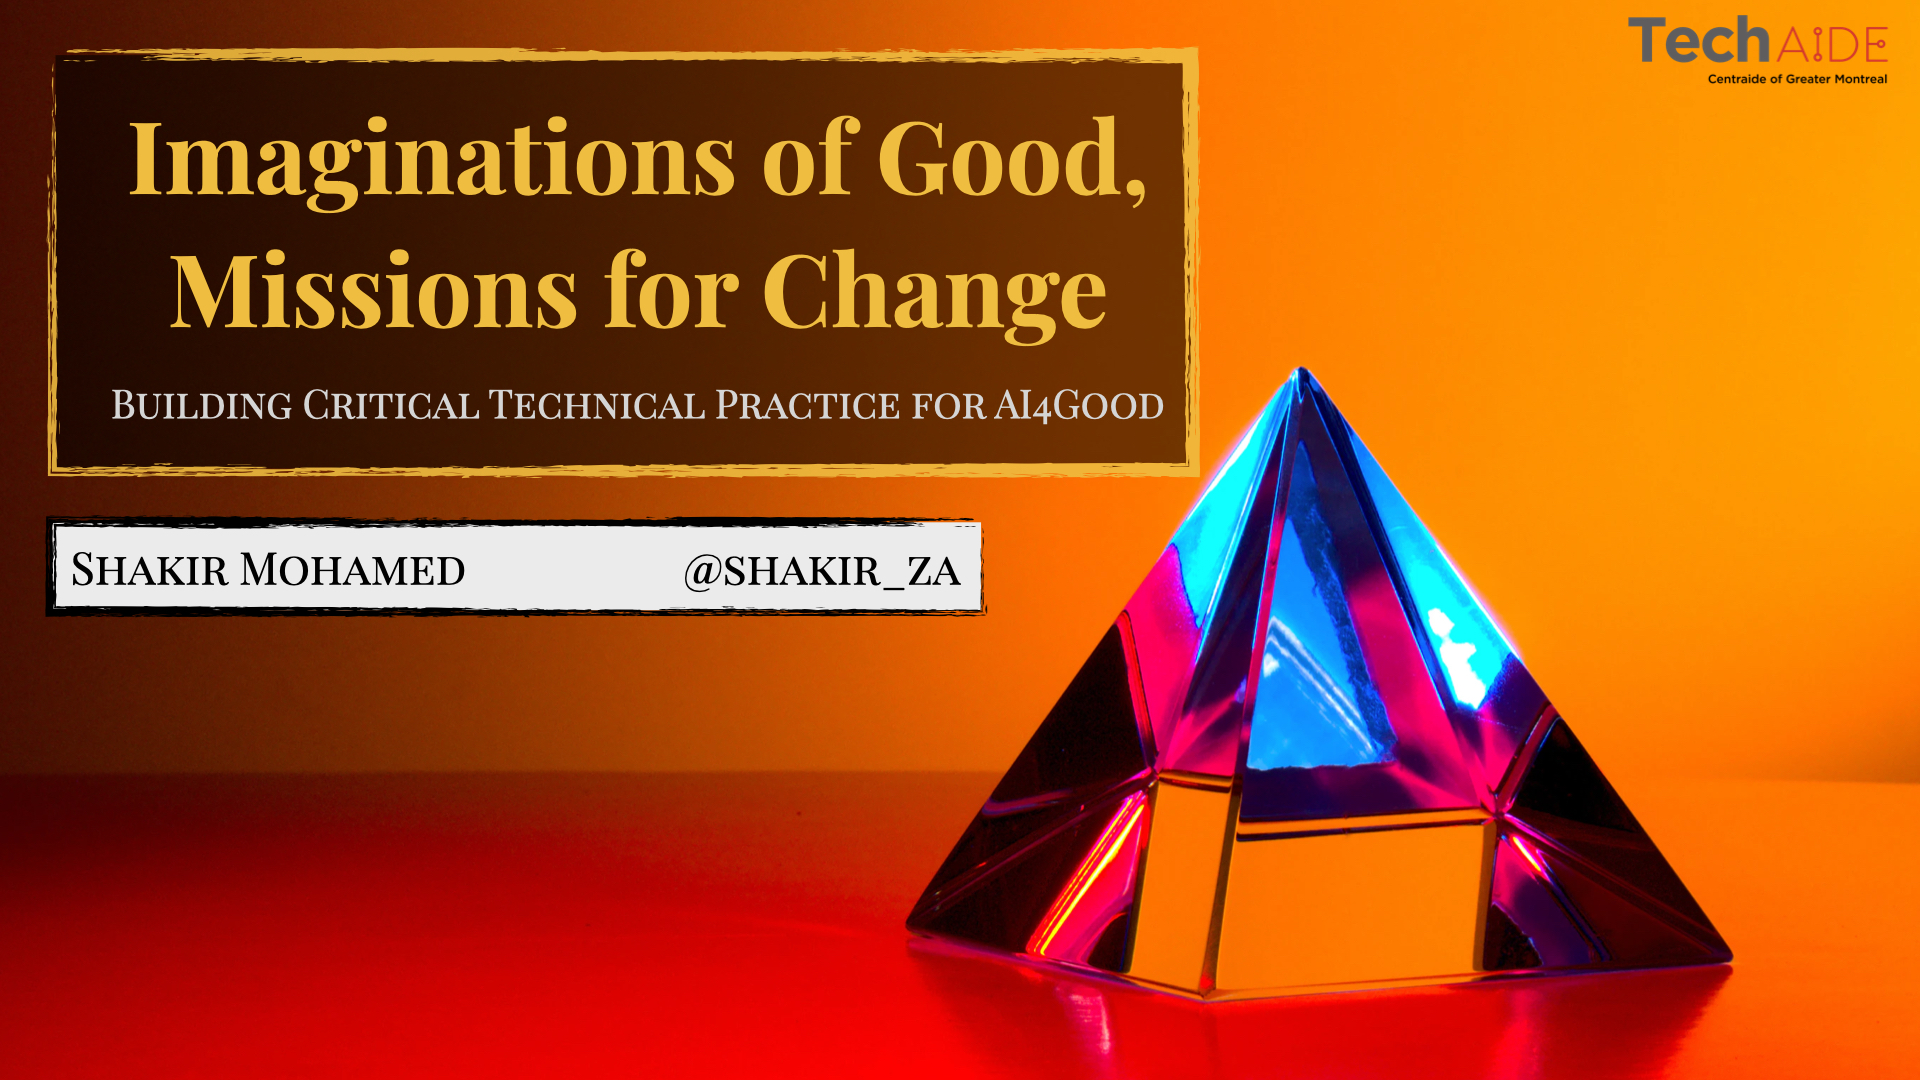 Imaginations of Good, Missions for Change